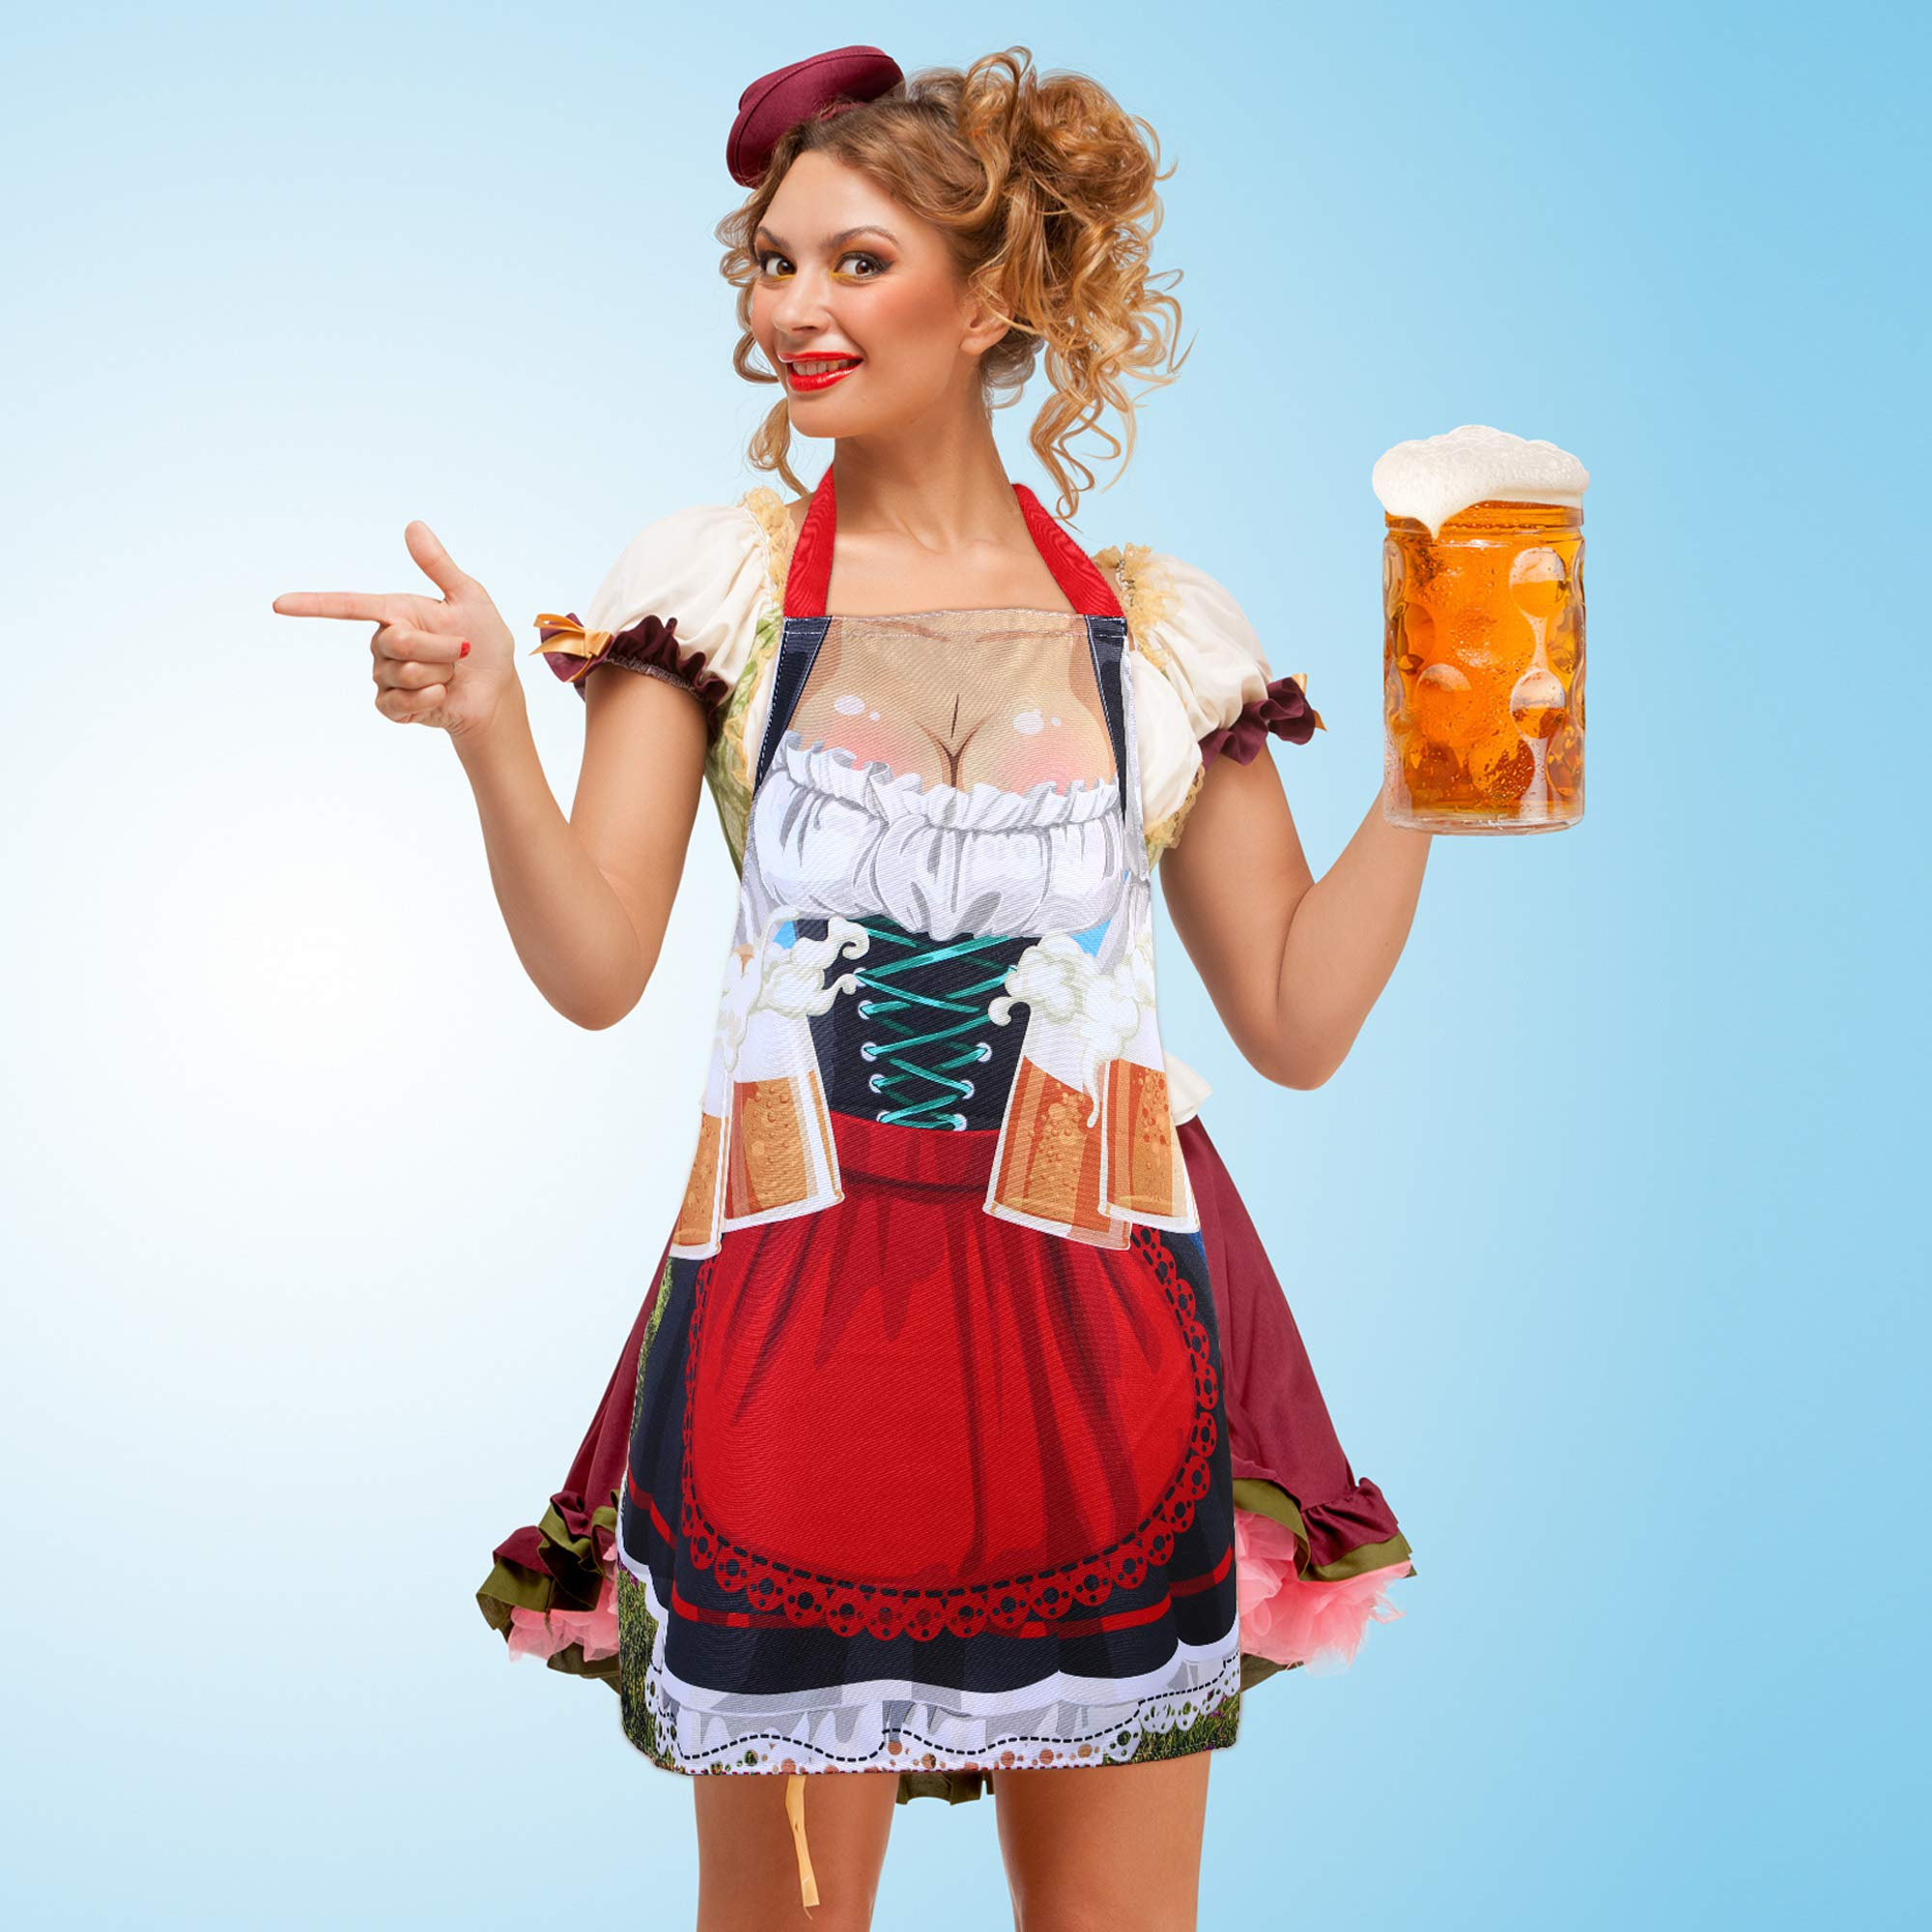 Blulu Oktoberfest Dress Apron, Bavarian Fabric Novelty Fraulein Apron with Long Ties for Oktoberfest Party Supplies and Decorations, 30 x 27 Inch by Blulu